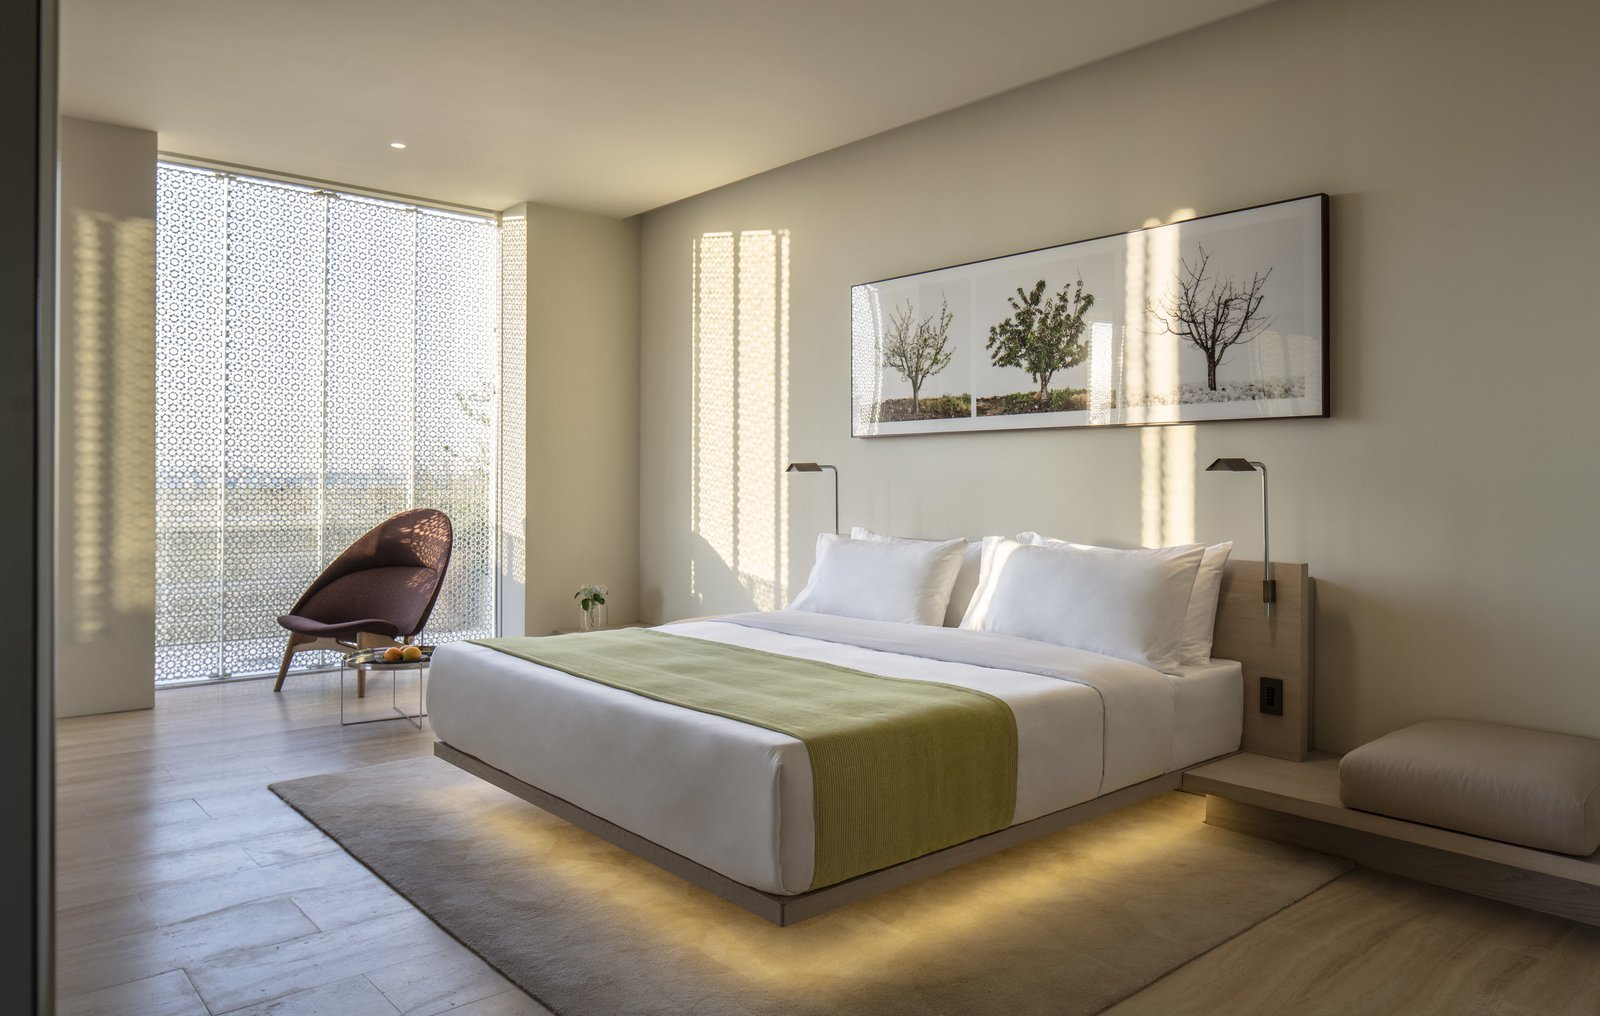 Bedroom, Wall Lighting, Chair, Bed, Rug Floor, and Bench The bedroom of the Presidential suite.  Jaffa Hotel from John Pawson Turns an Old Hospital and Convent Into a Luxe Hotel in Israel